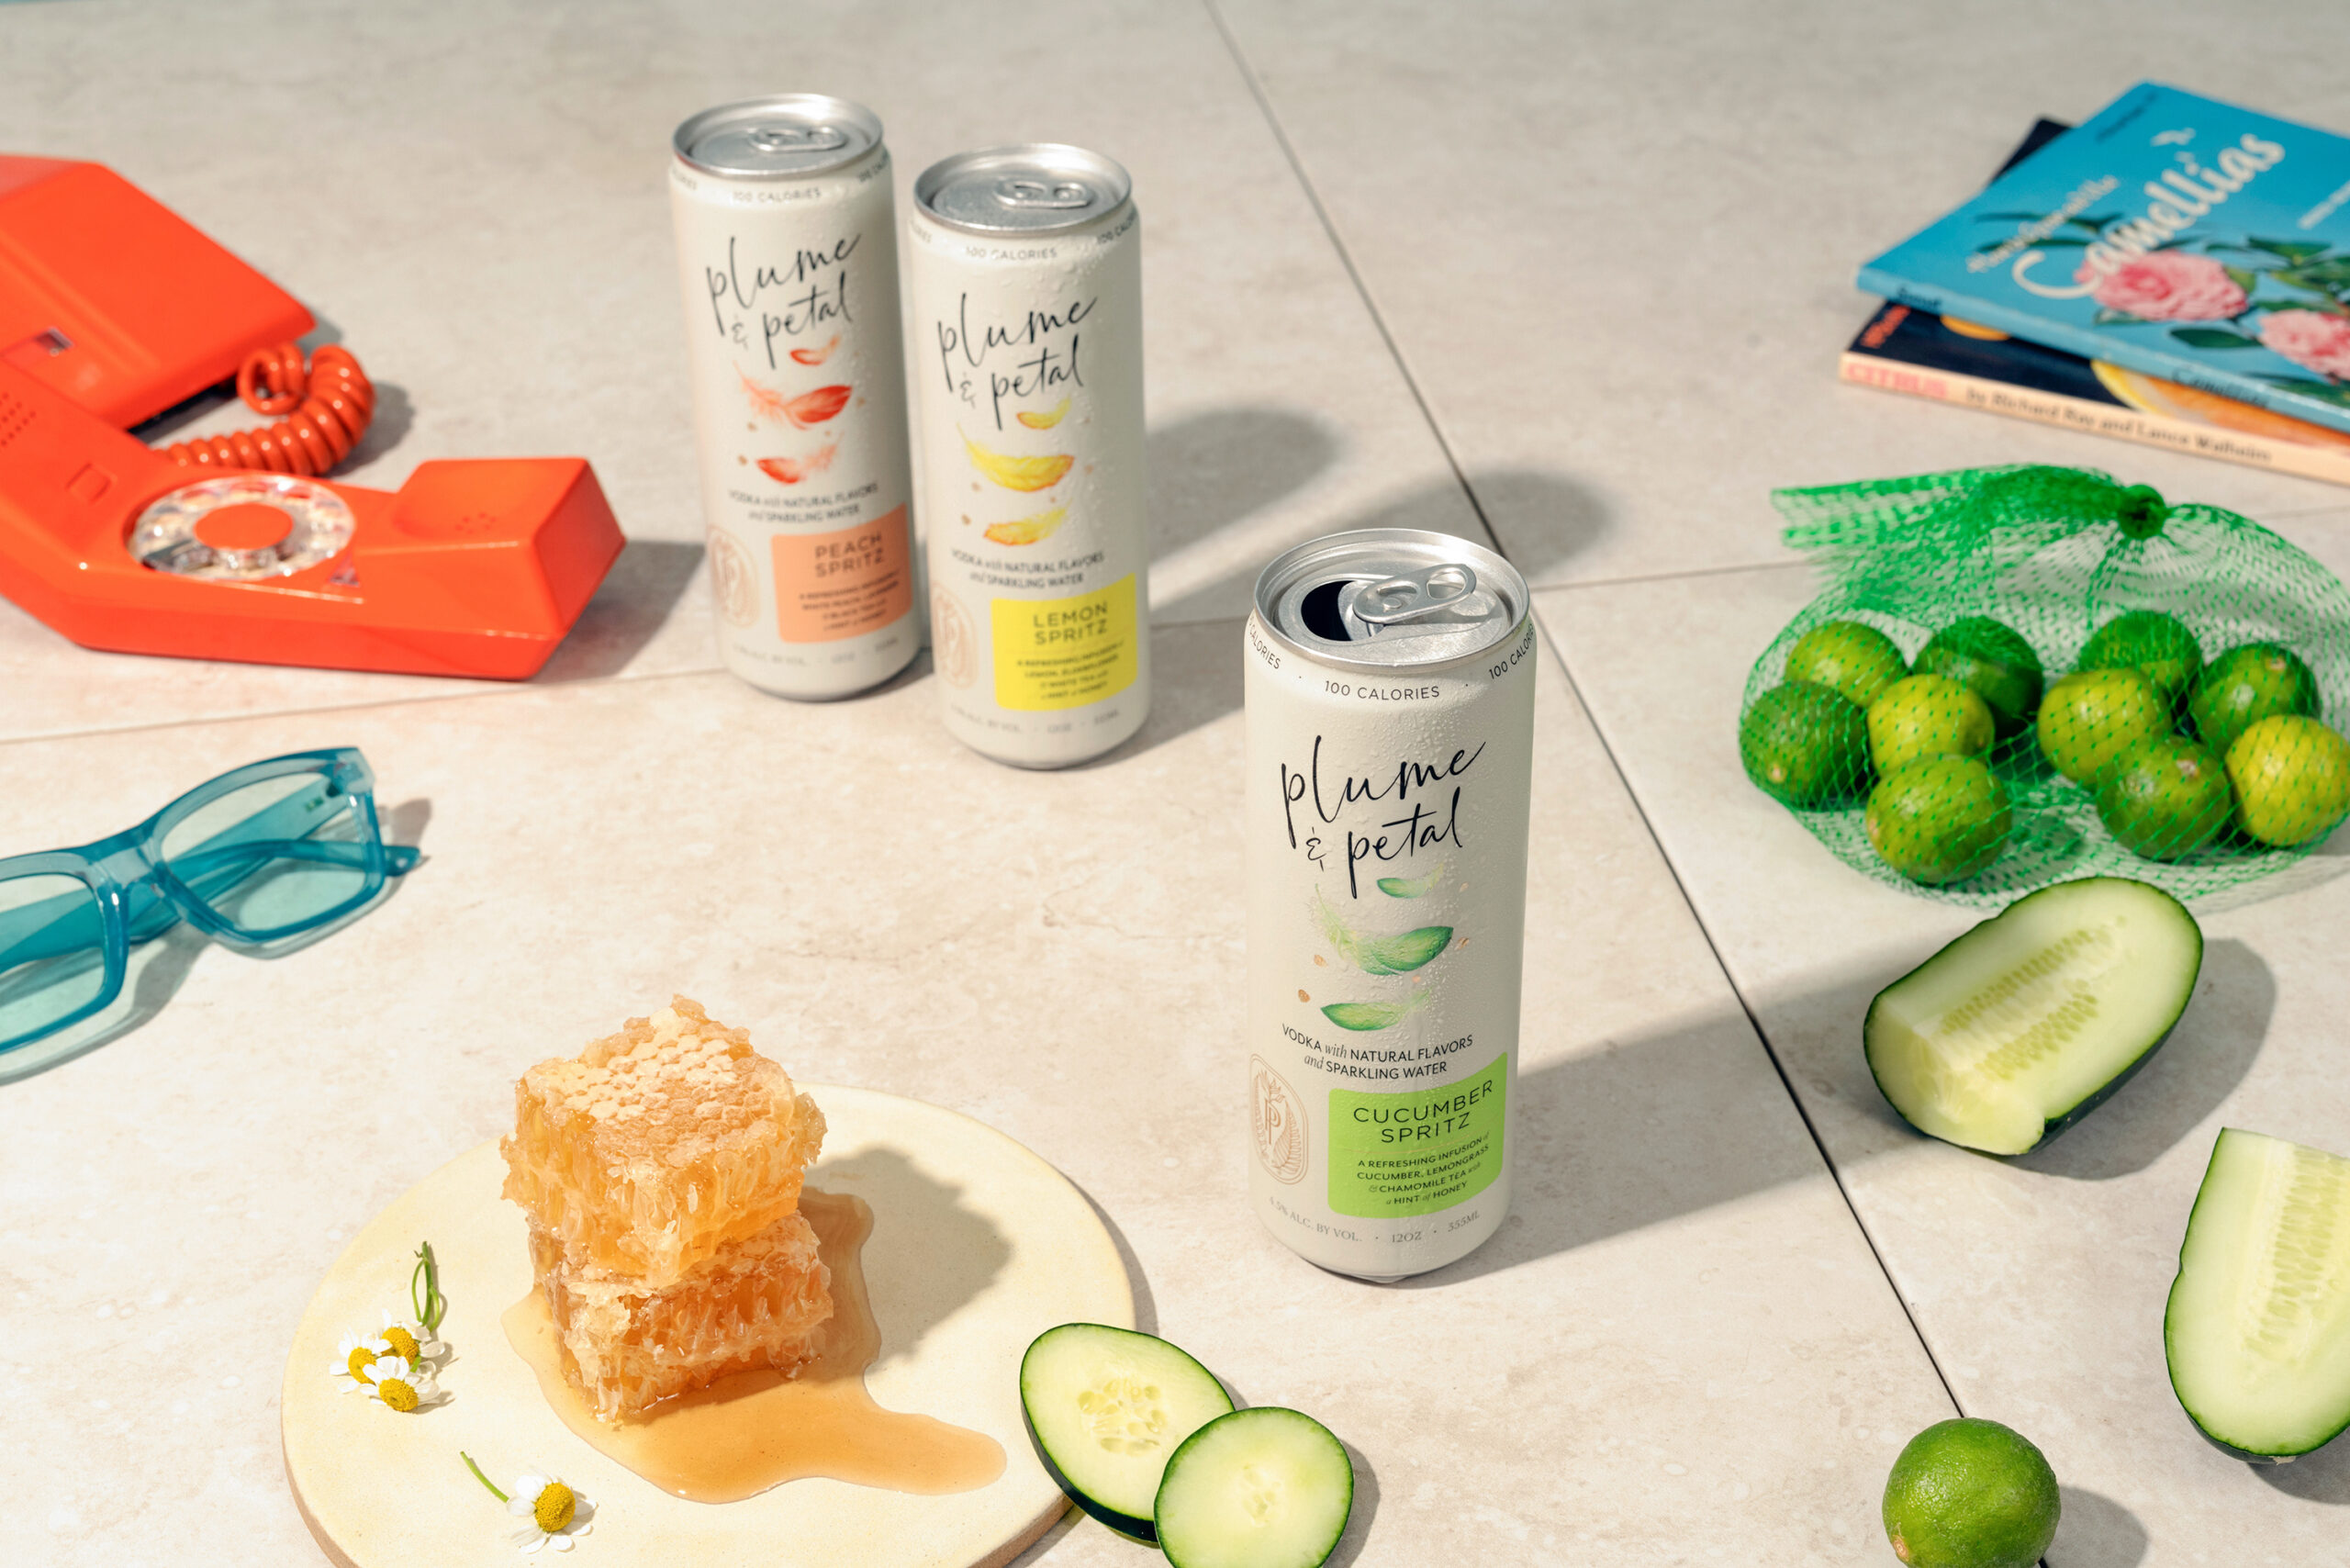 PRODUCT_HERO_CANS_CUCUMBER_0770_sm